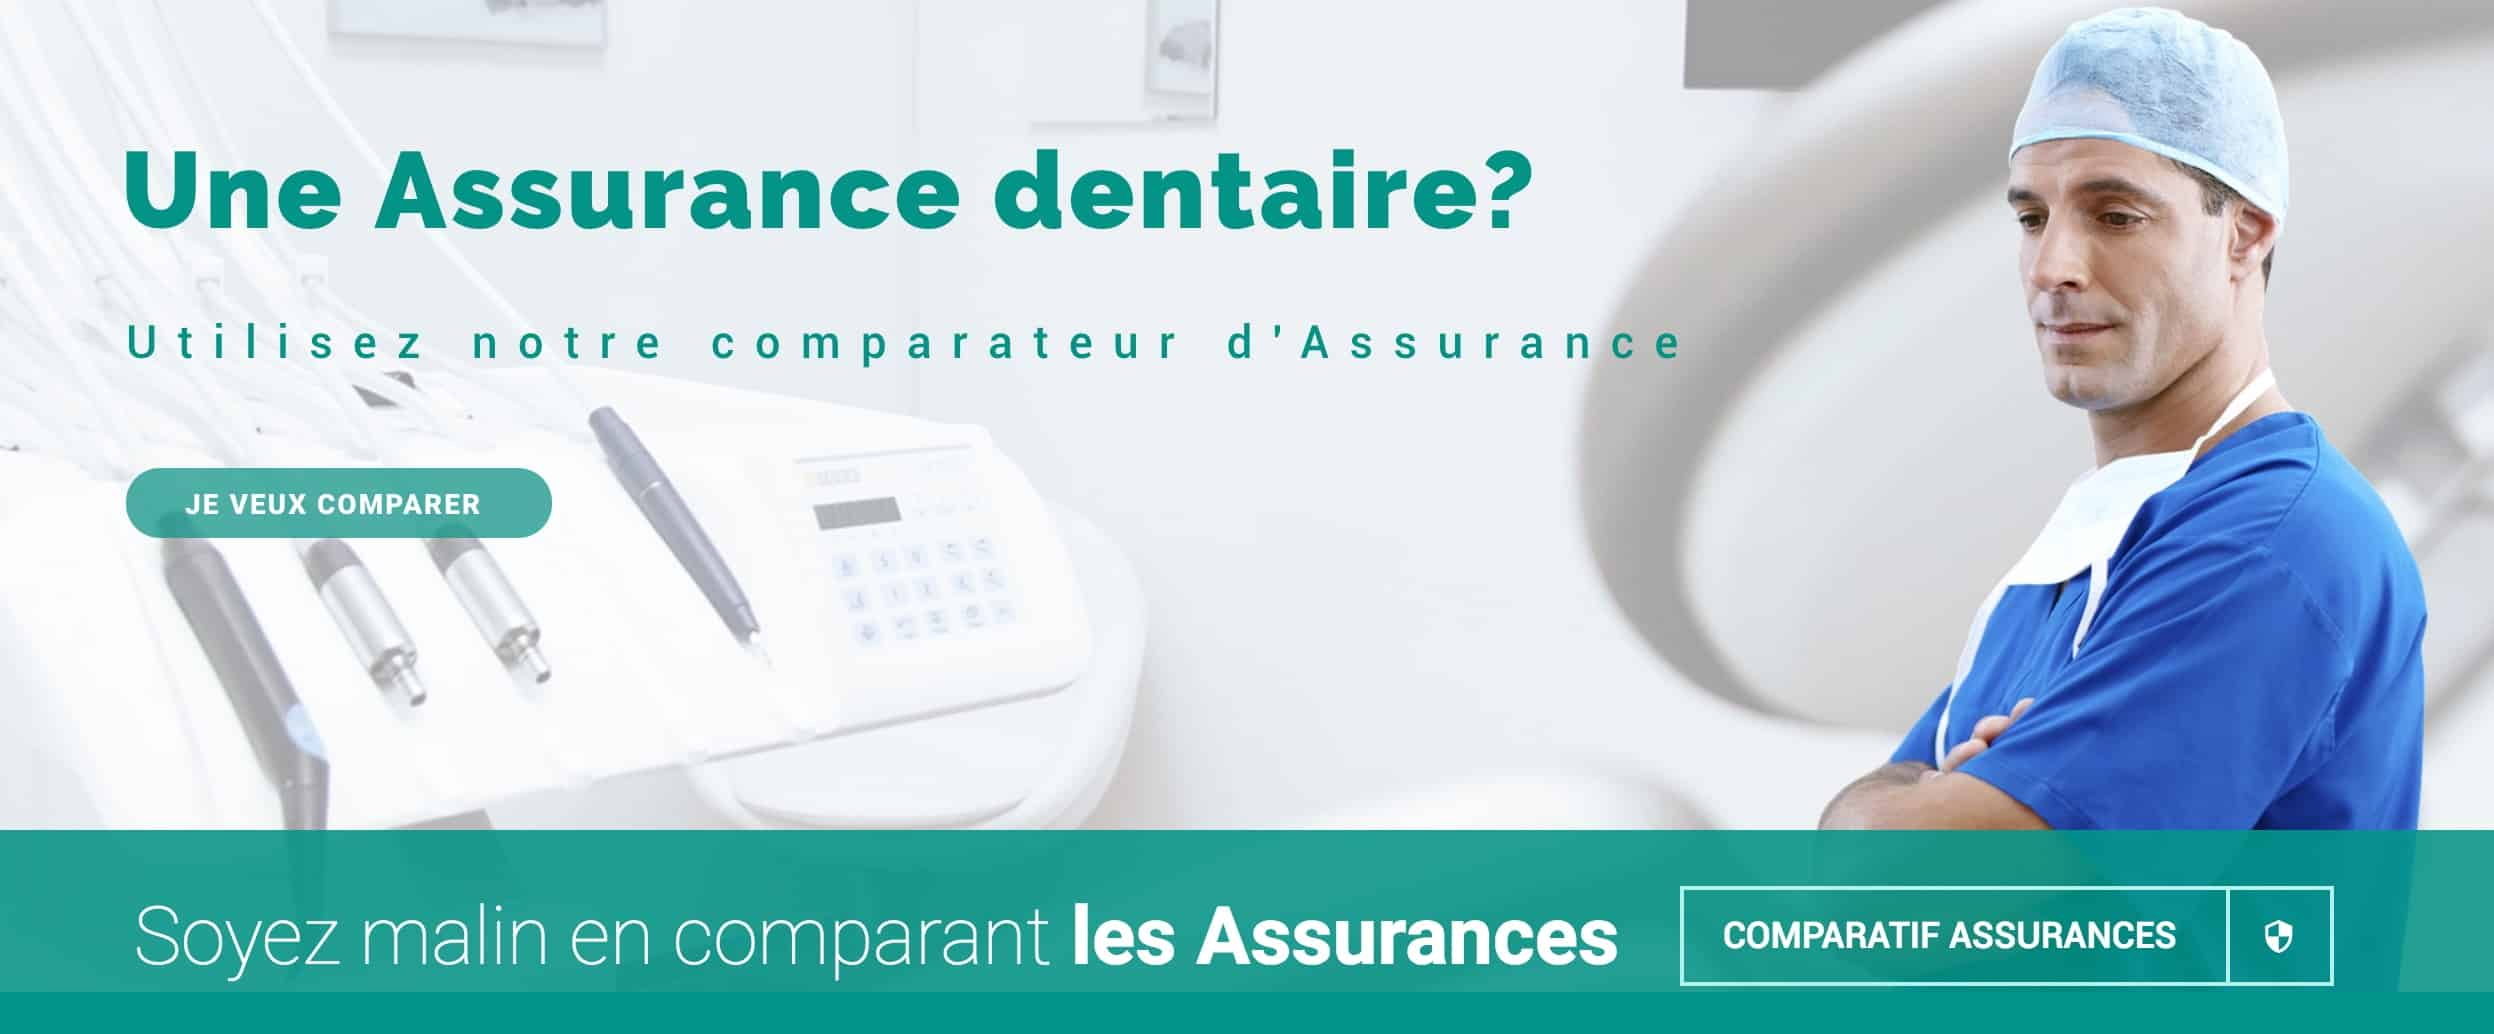 assurance dentaire